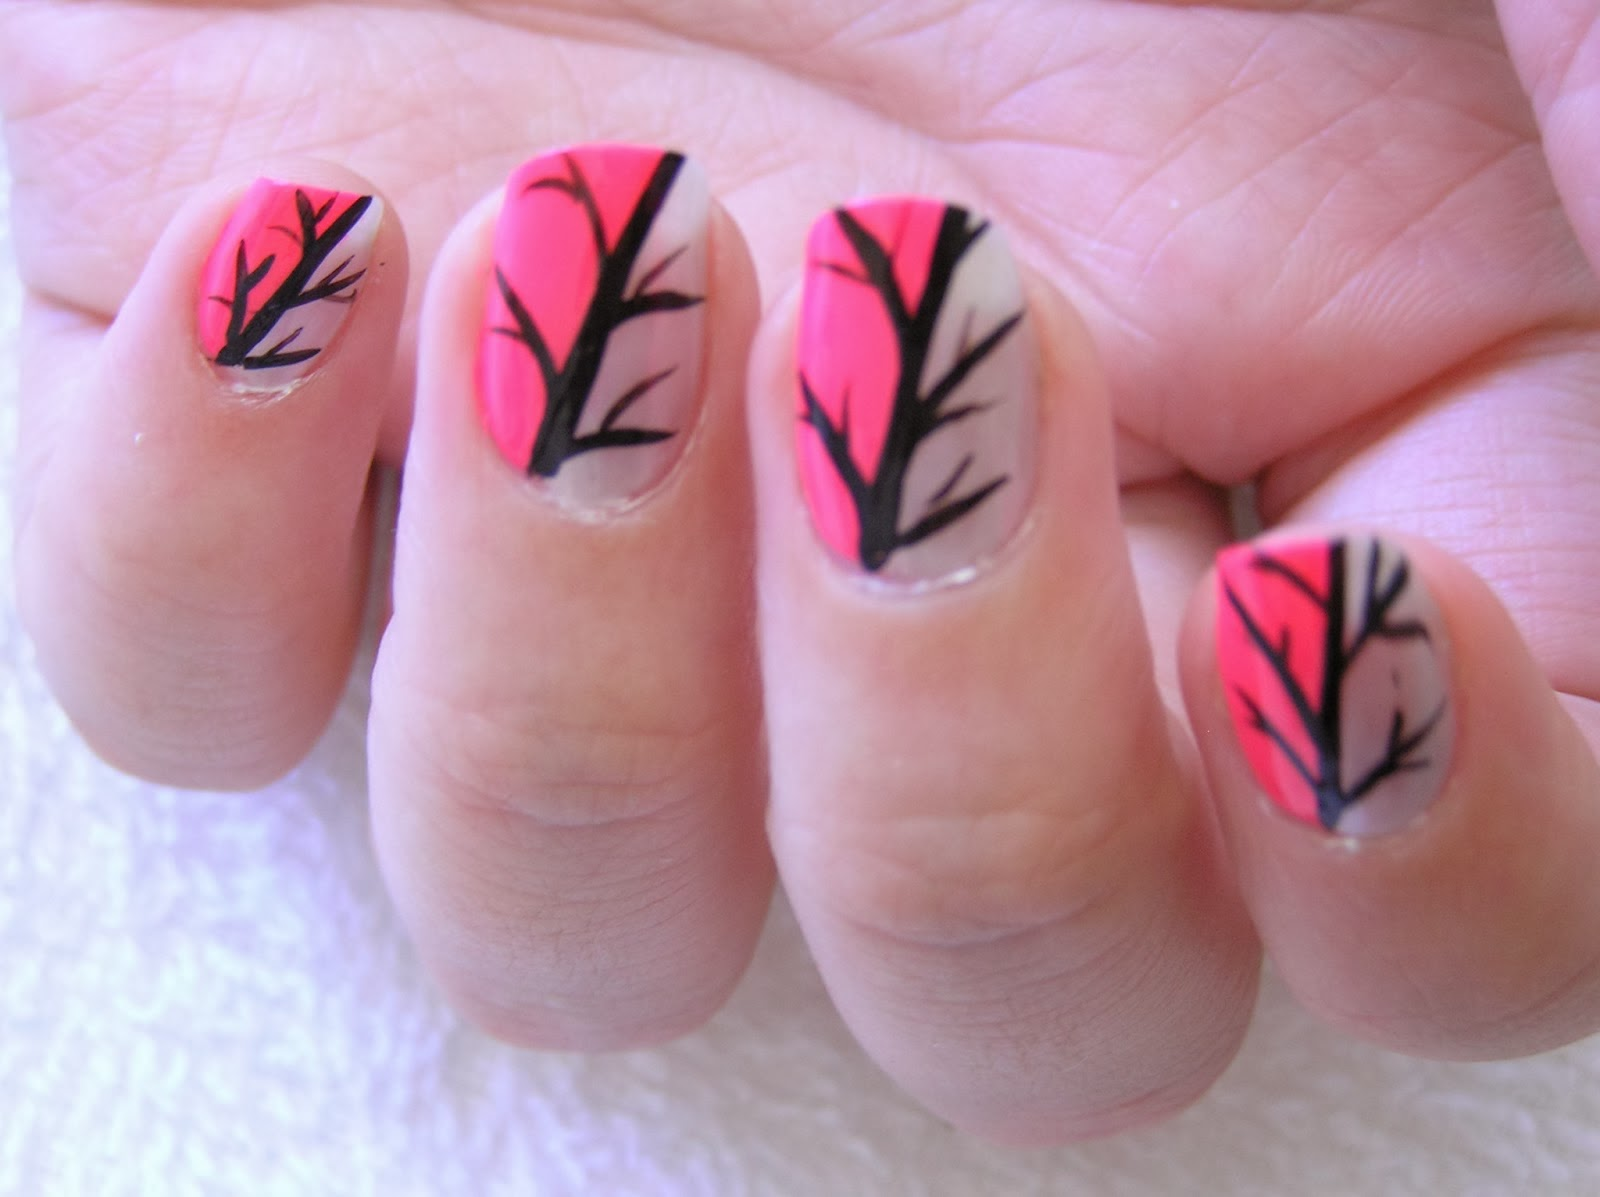 nail design - Daway.dabrowa.co